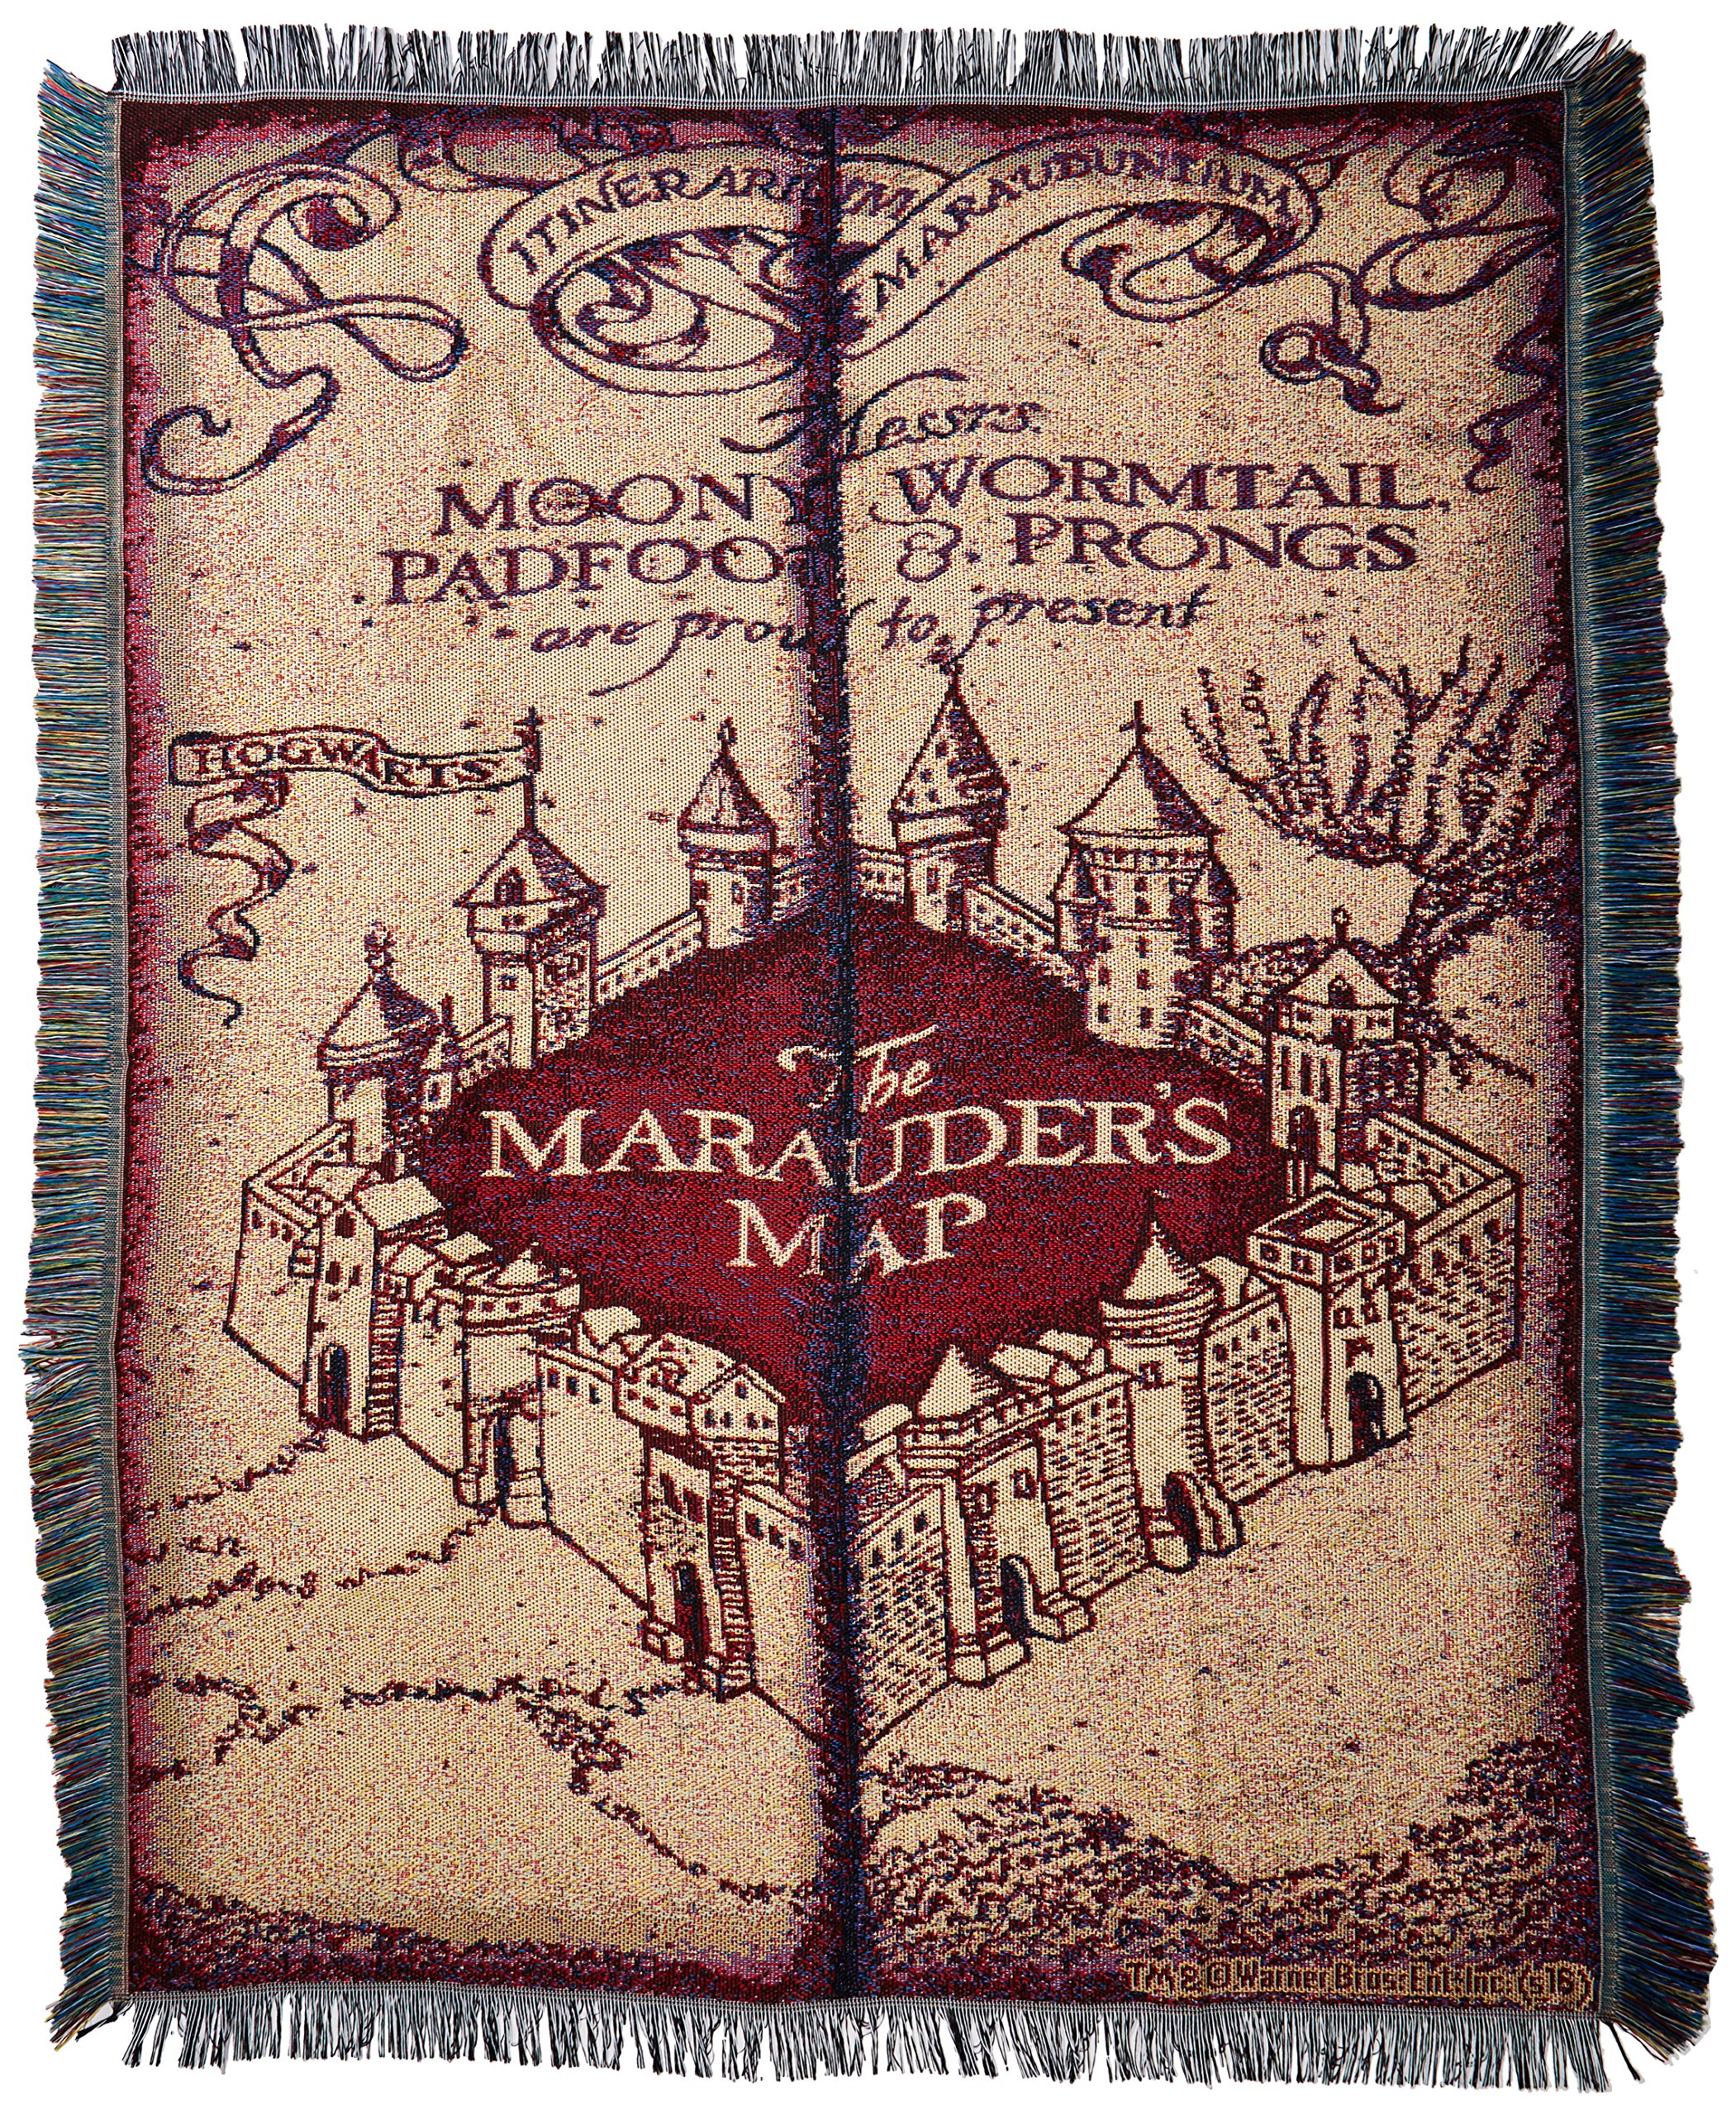 Warner Brothers JK Rowling Harry Potter,''Marauder's Map'' Woven Tapestry Throw Blanket, 48'' x 60''